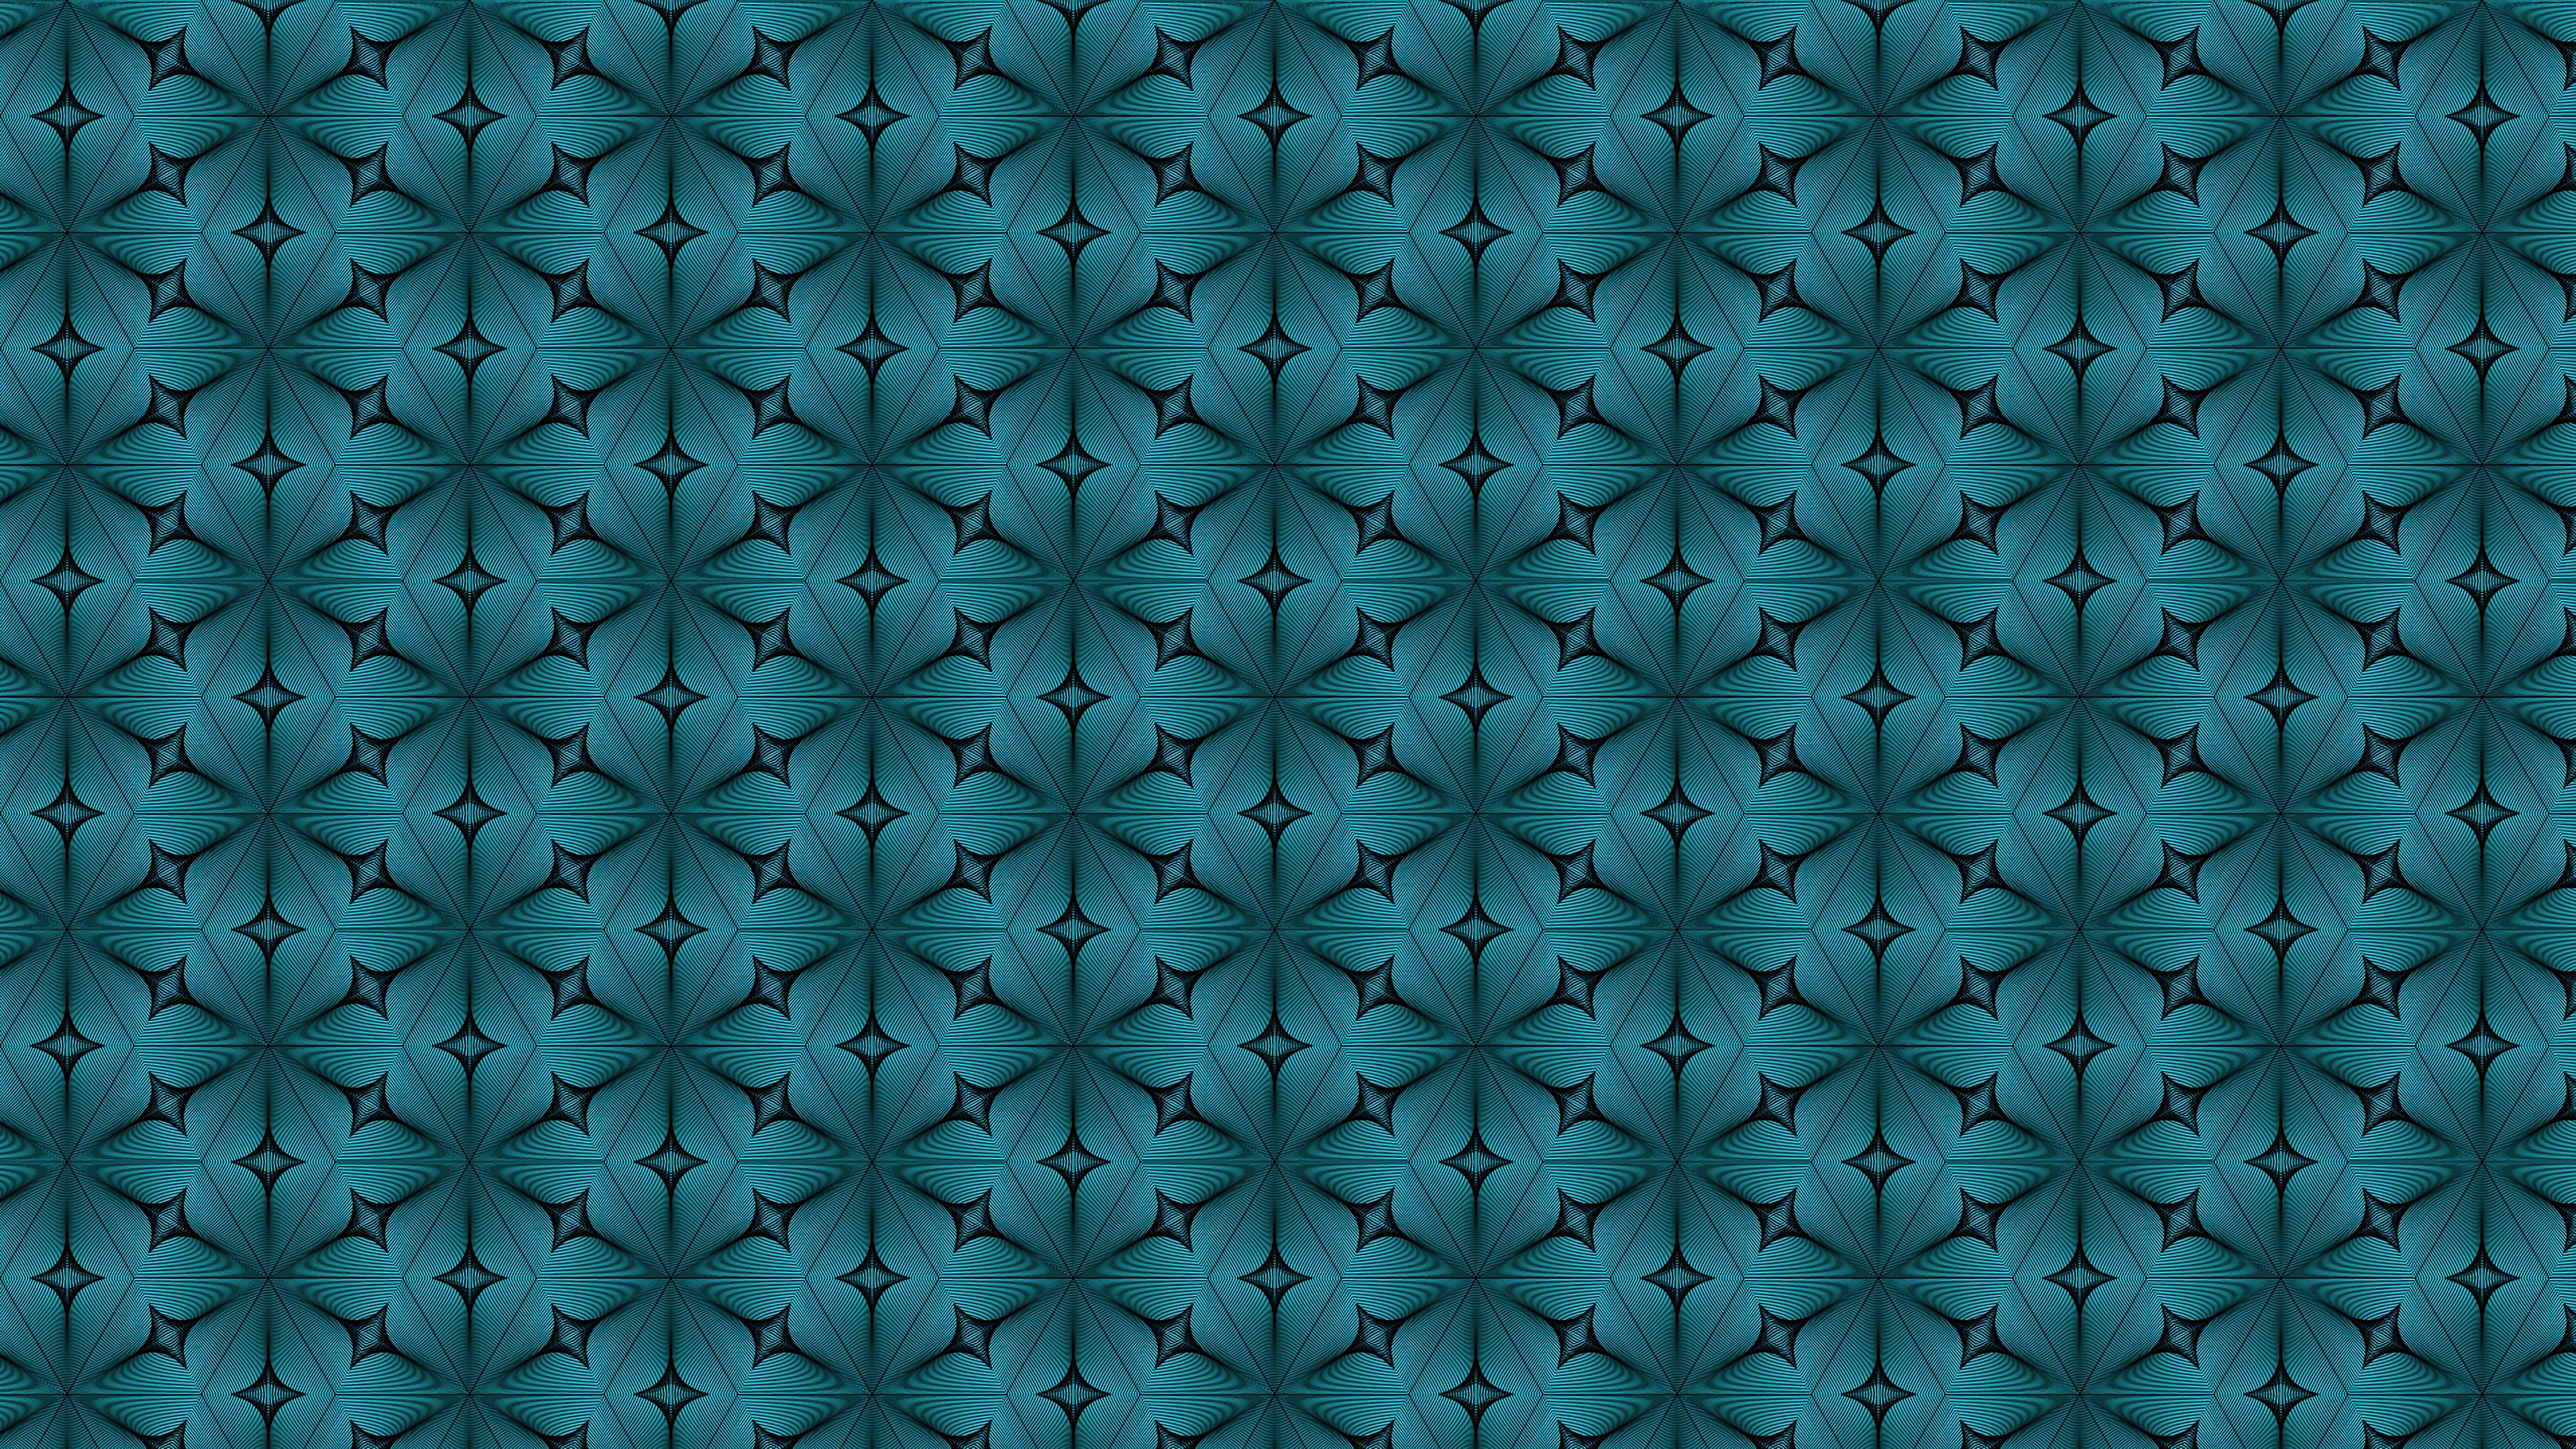 130842 free download Turquoise wallpapers for phone, Textures, Texture, Pattern, Geometric, Symmetry, Lines Turquoise images and screensavers for mobile